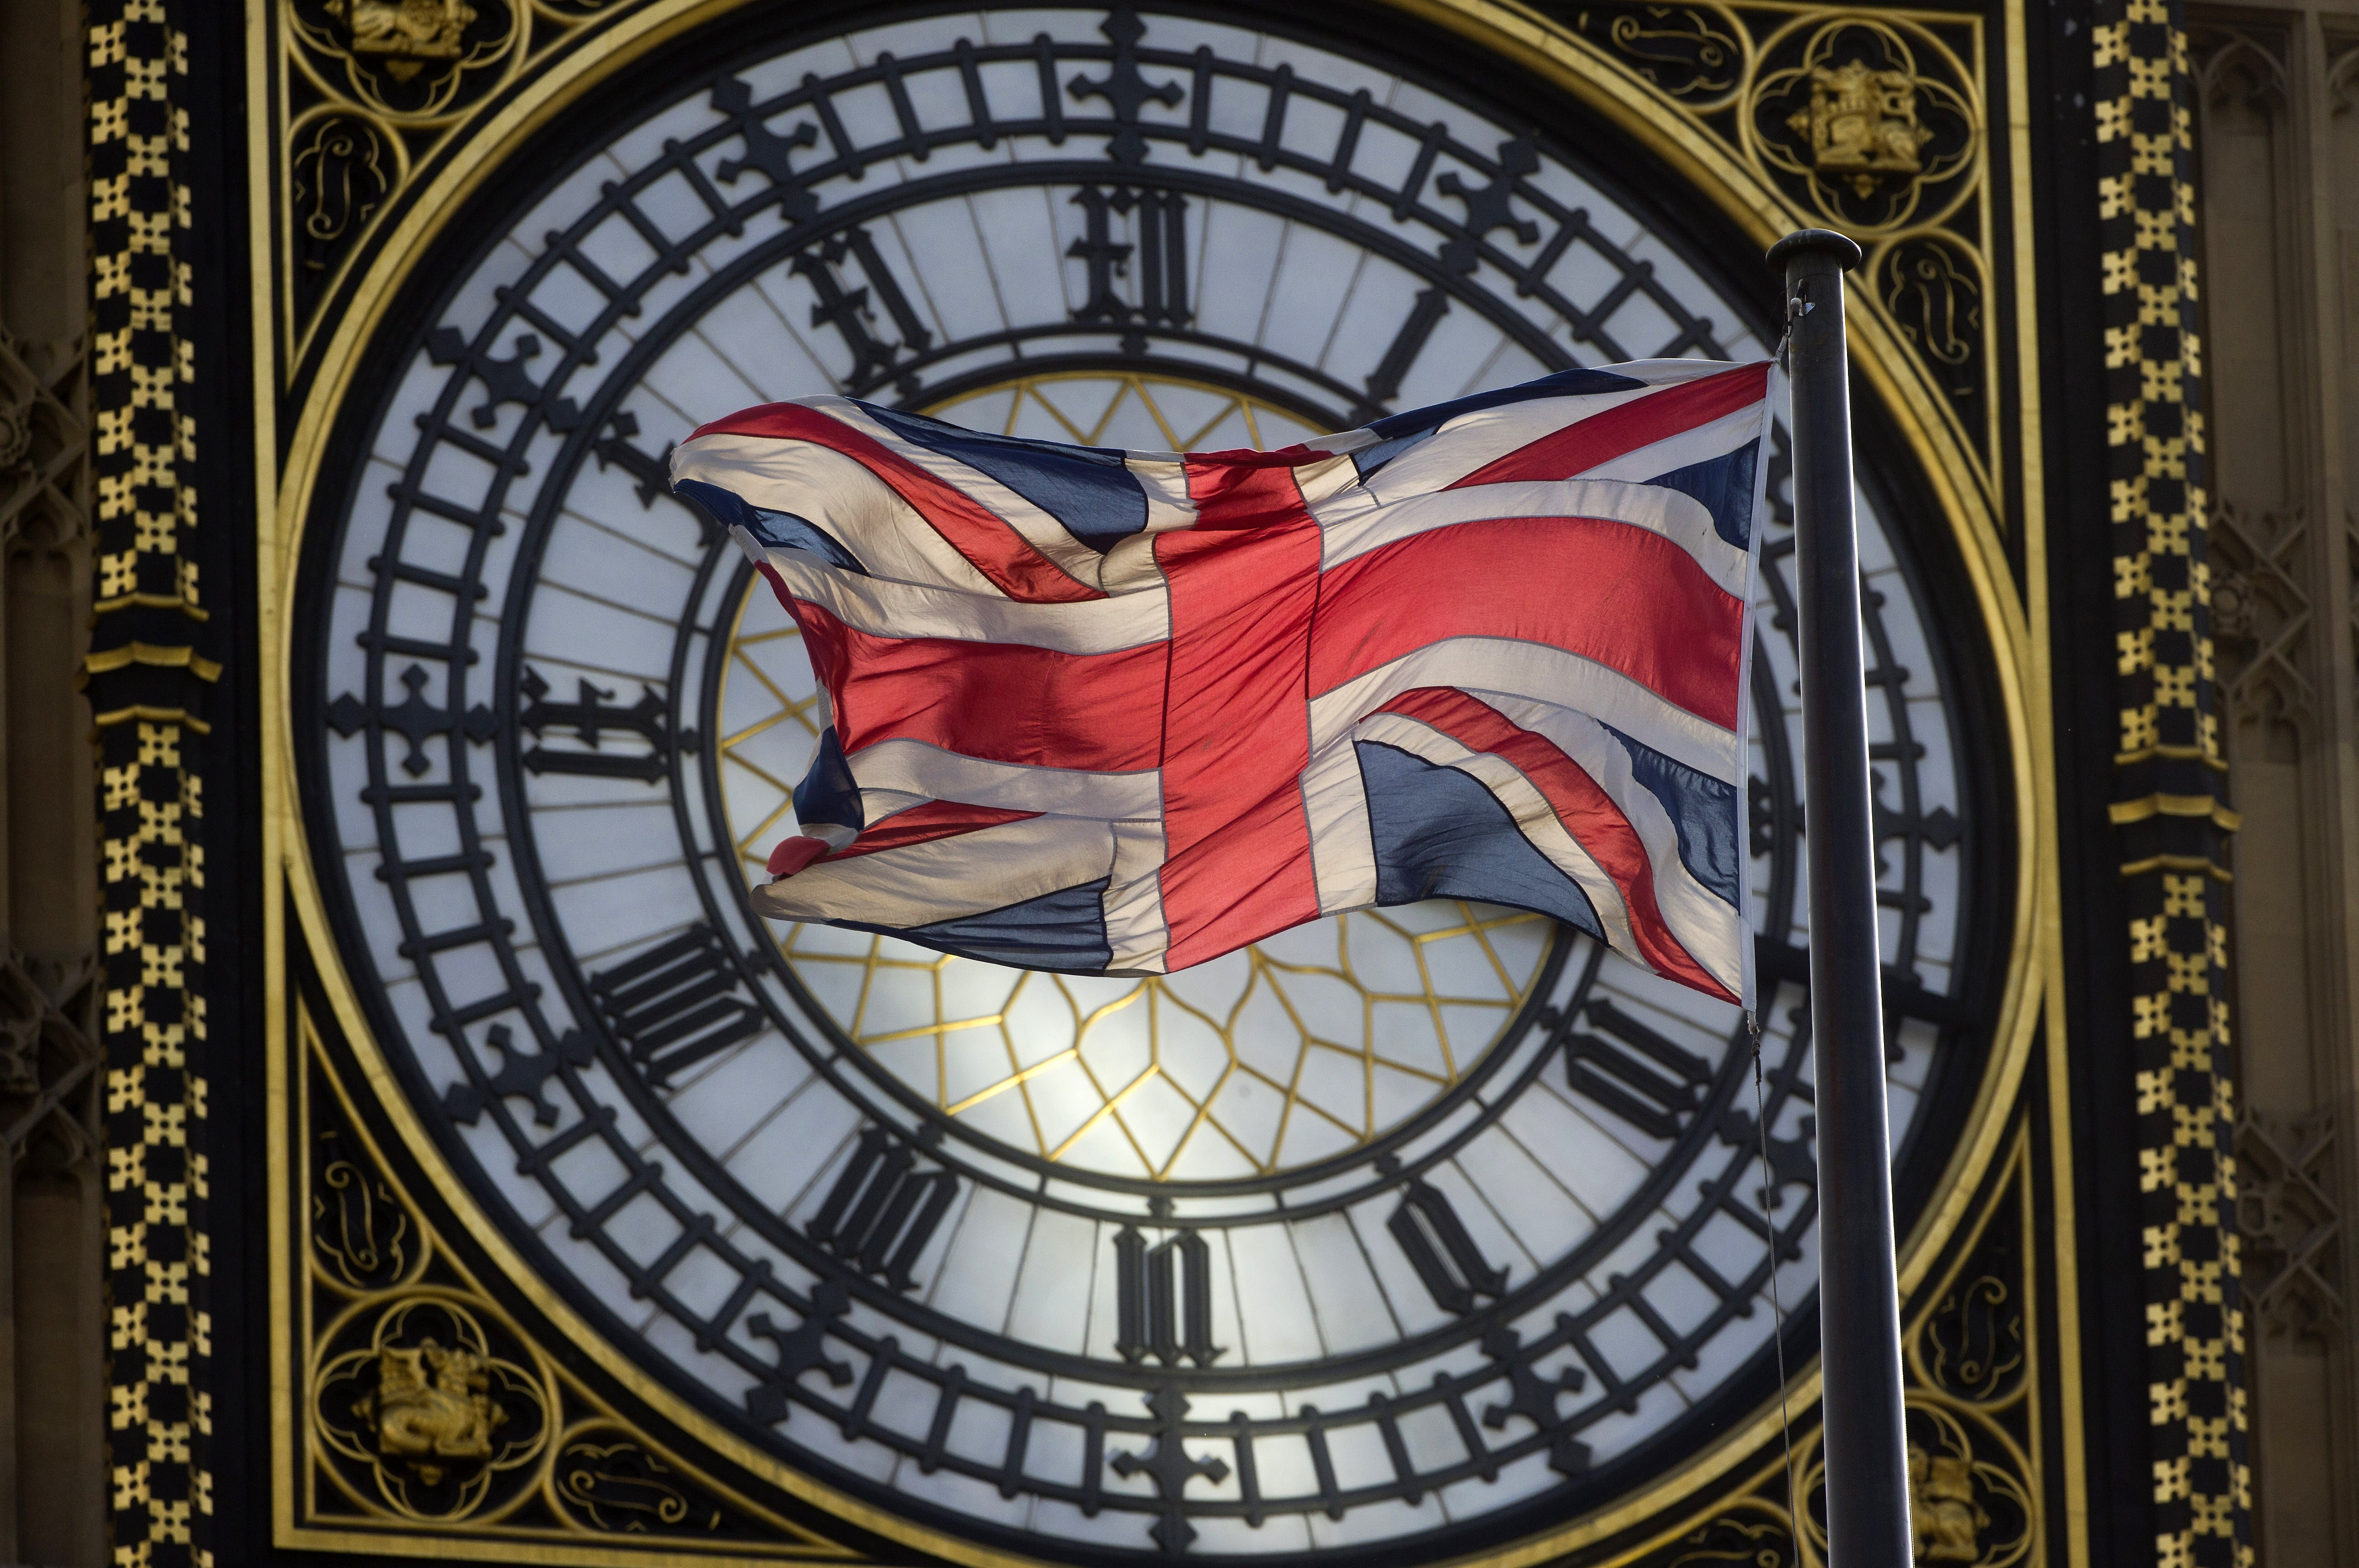 The Union flag is seen flapping in the wind in front of one of the faces of the Great Clock atop the landmark Elizabeth Tower that houses Big Ben at the Houses of Parliament.